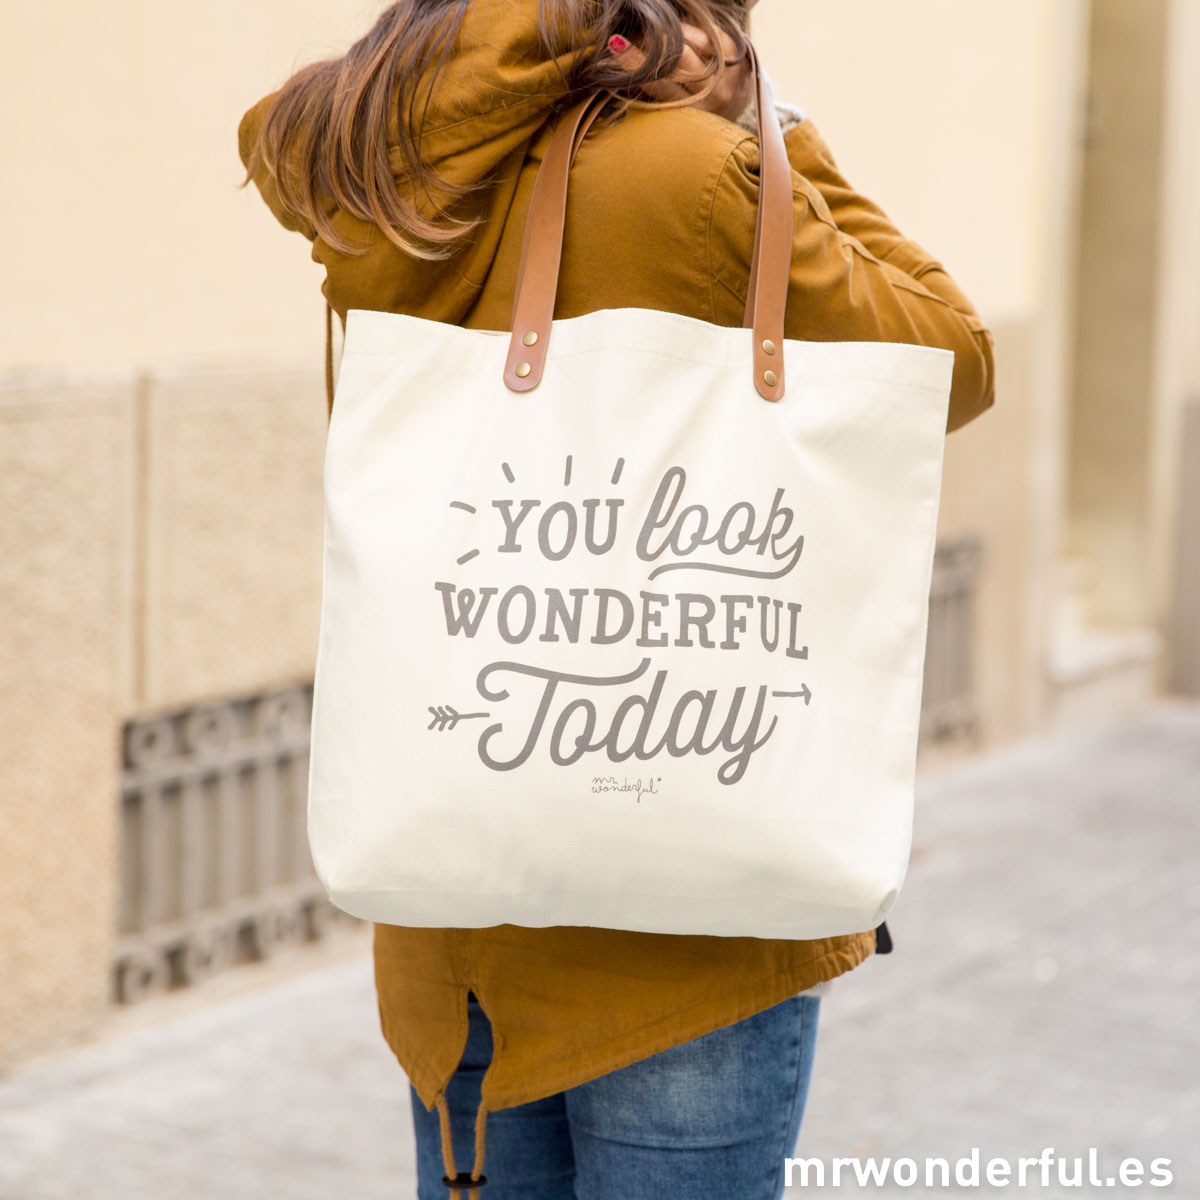 mrwonderful_totebag-you-look-wonderful-today-2015-1